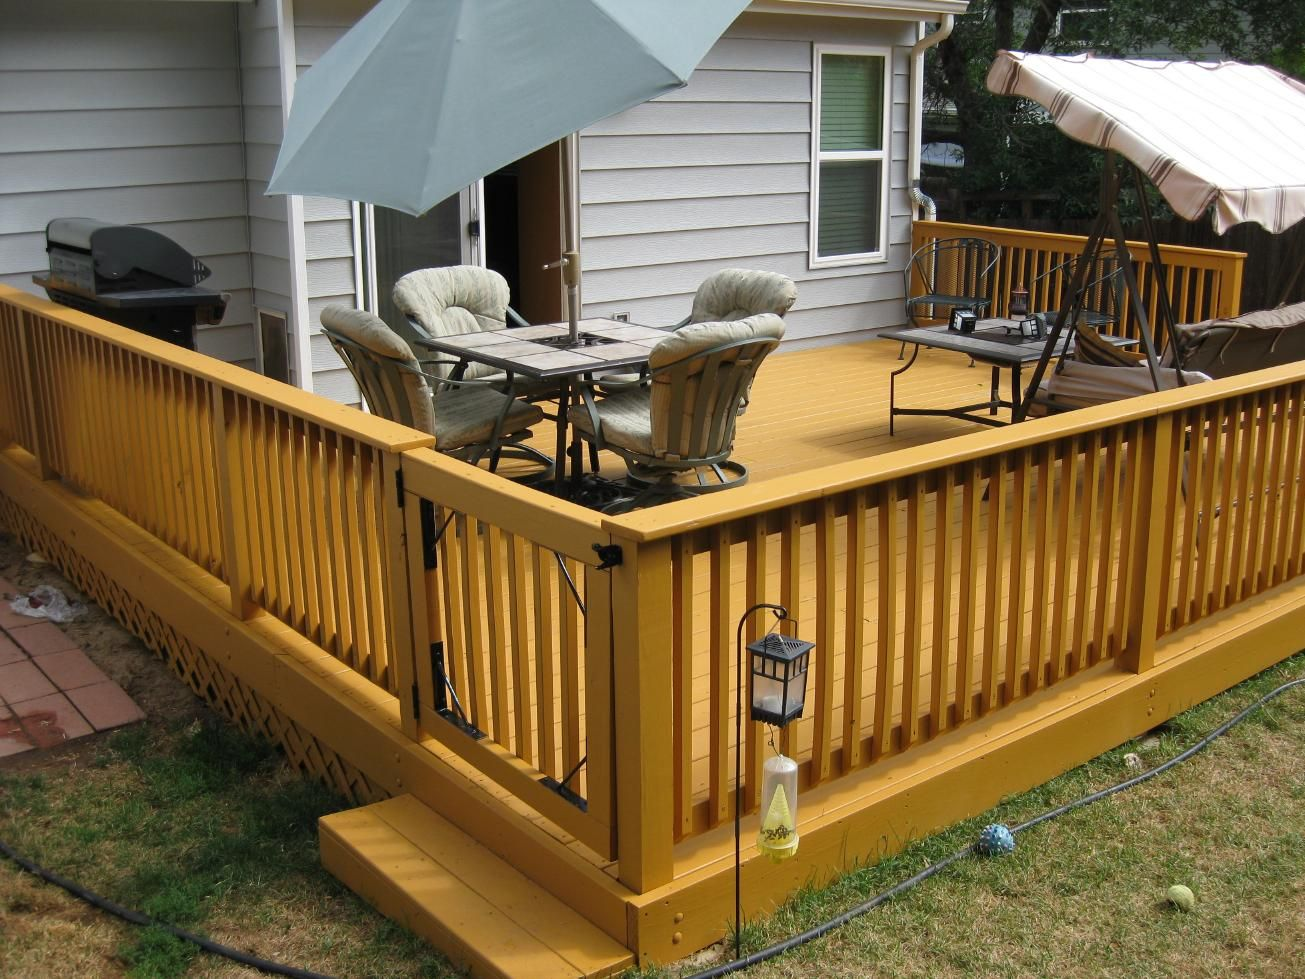 How To Design A Deck For The Backyard backyard deck design ideas create a safe but open wood deck design using a multi level Deck Designs Custom Treated Deck Design Take A Walk Down Briar Street